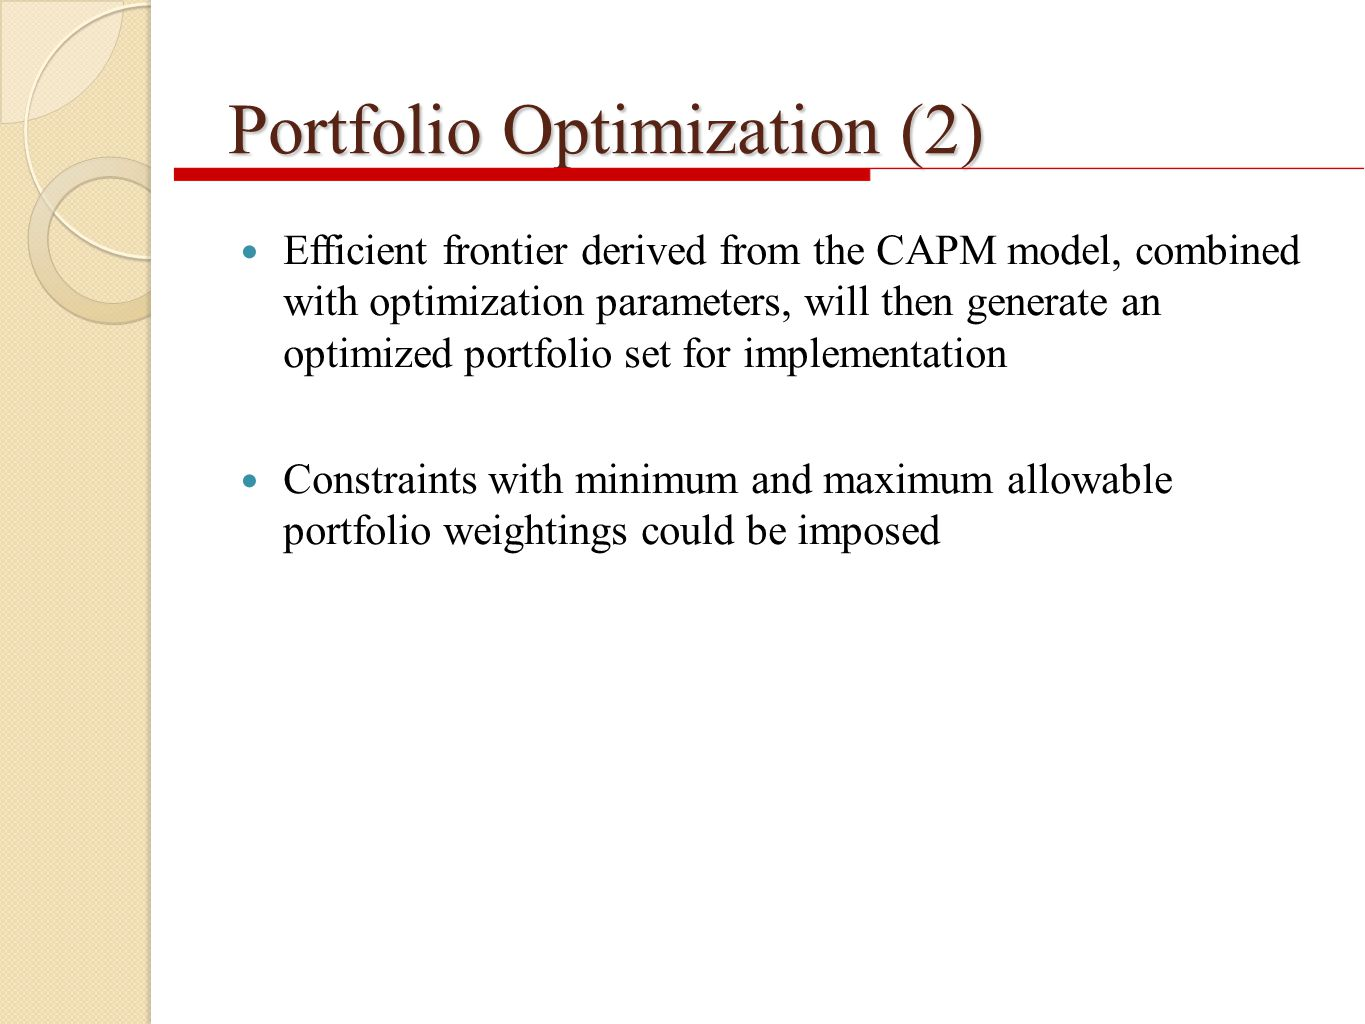 Portfolio Optimization (2) Efficient frontier derived from the CAPM model, combined with optimization parameters, will then generate an optimized portfolio set for implementation Constraints with minimum and maximum allowable portfolio weightings could be imposed